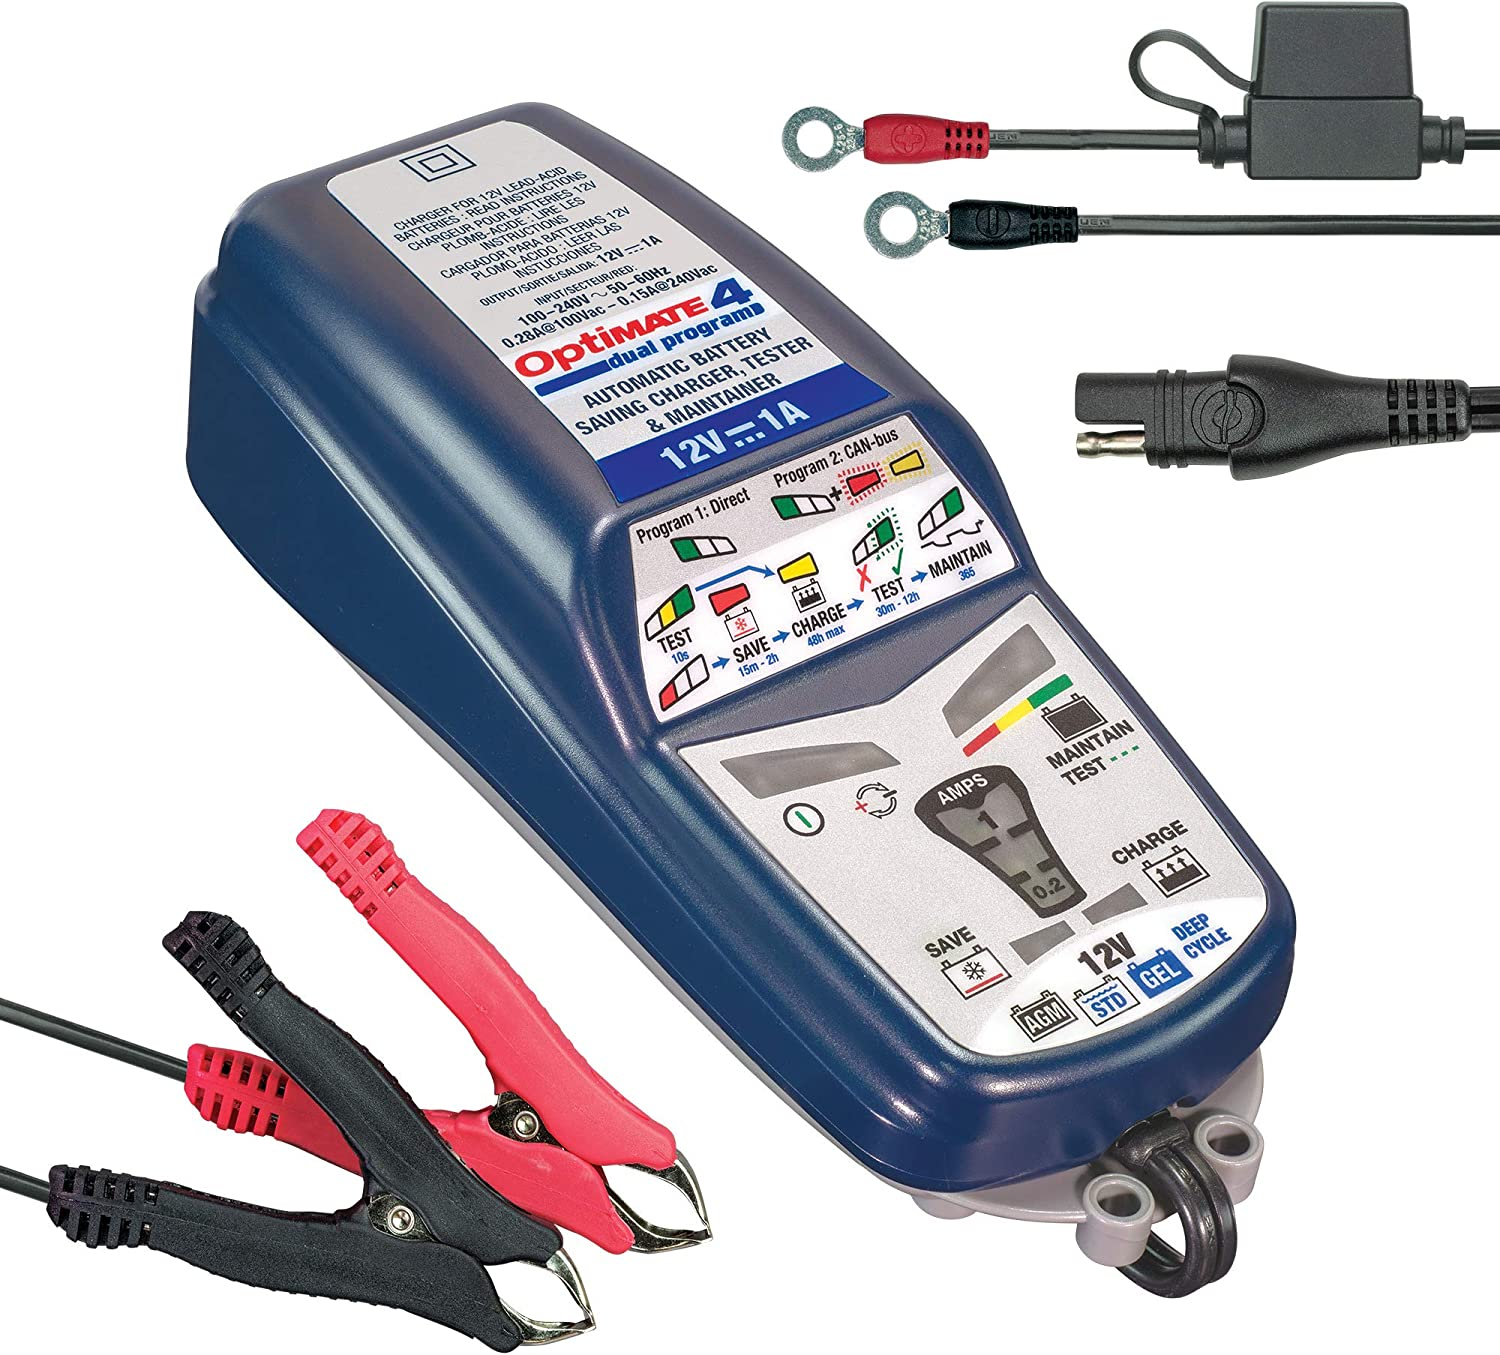 TecMate OptiMATE 4 DUAL Program, TM-341, 9-step 12V 1A sealed battery saving charger & maintainer